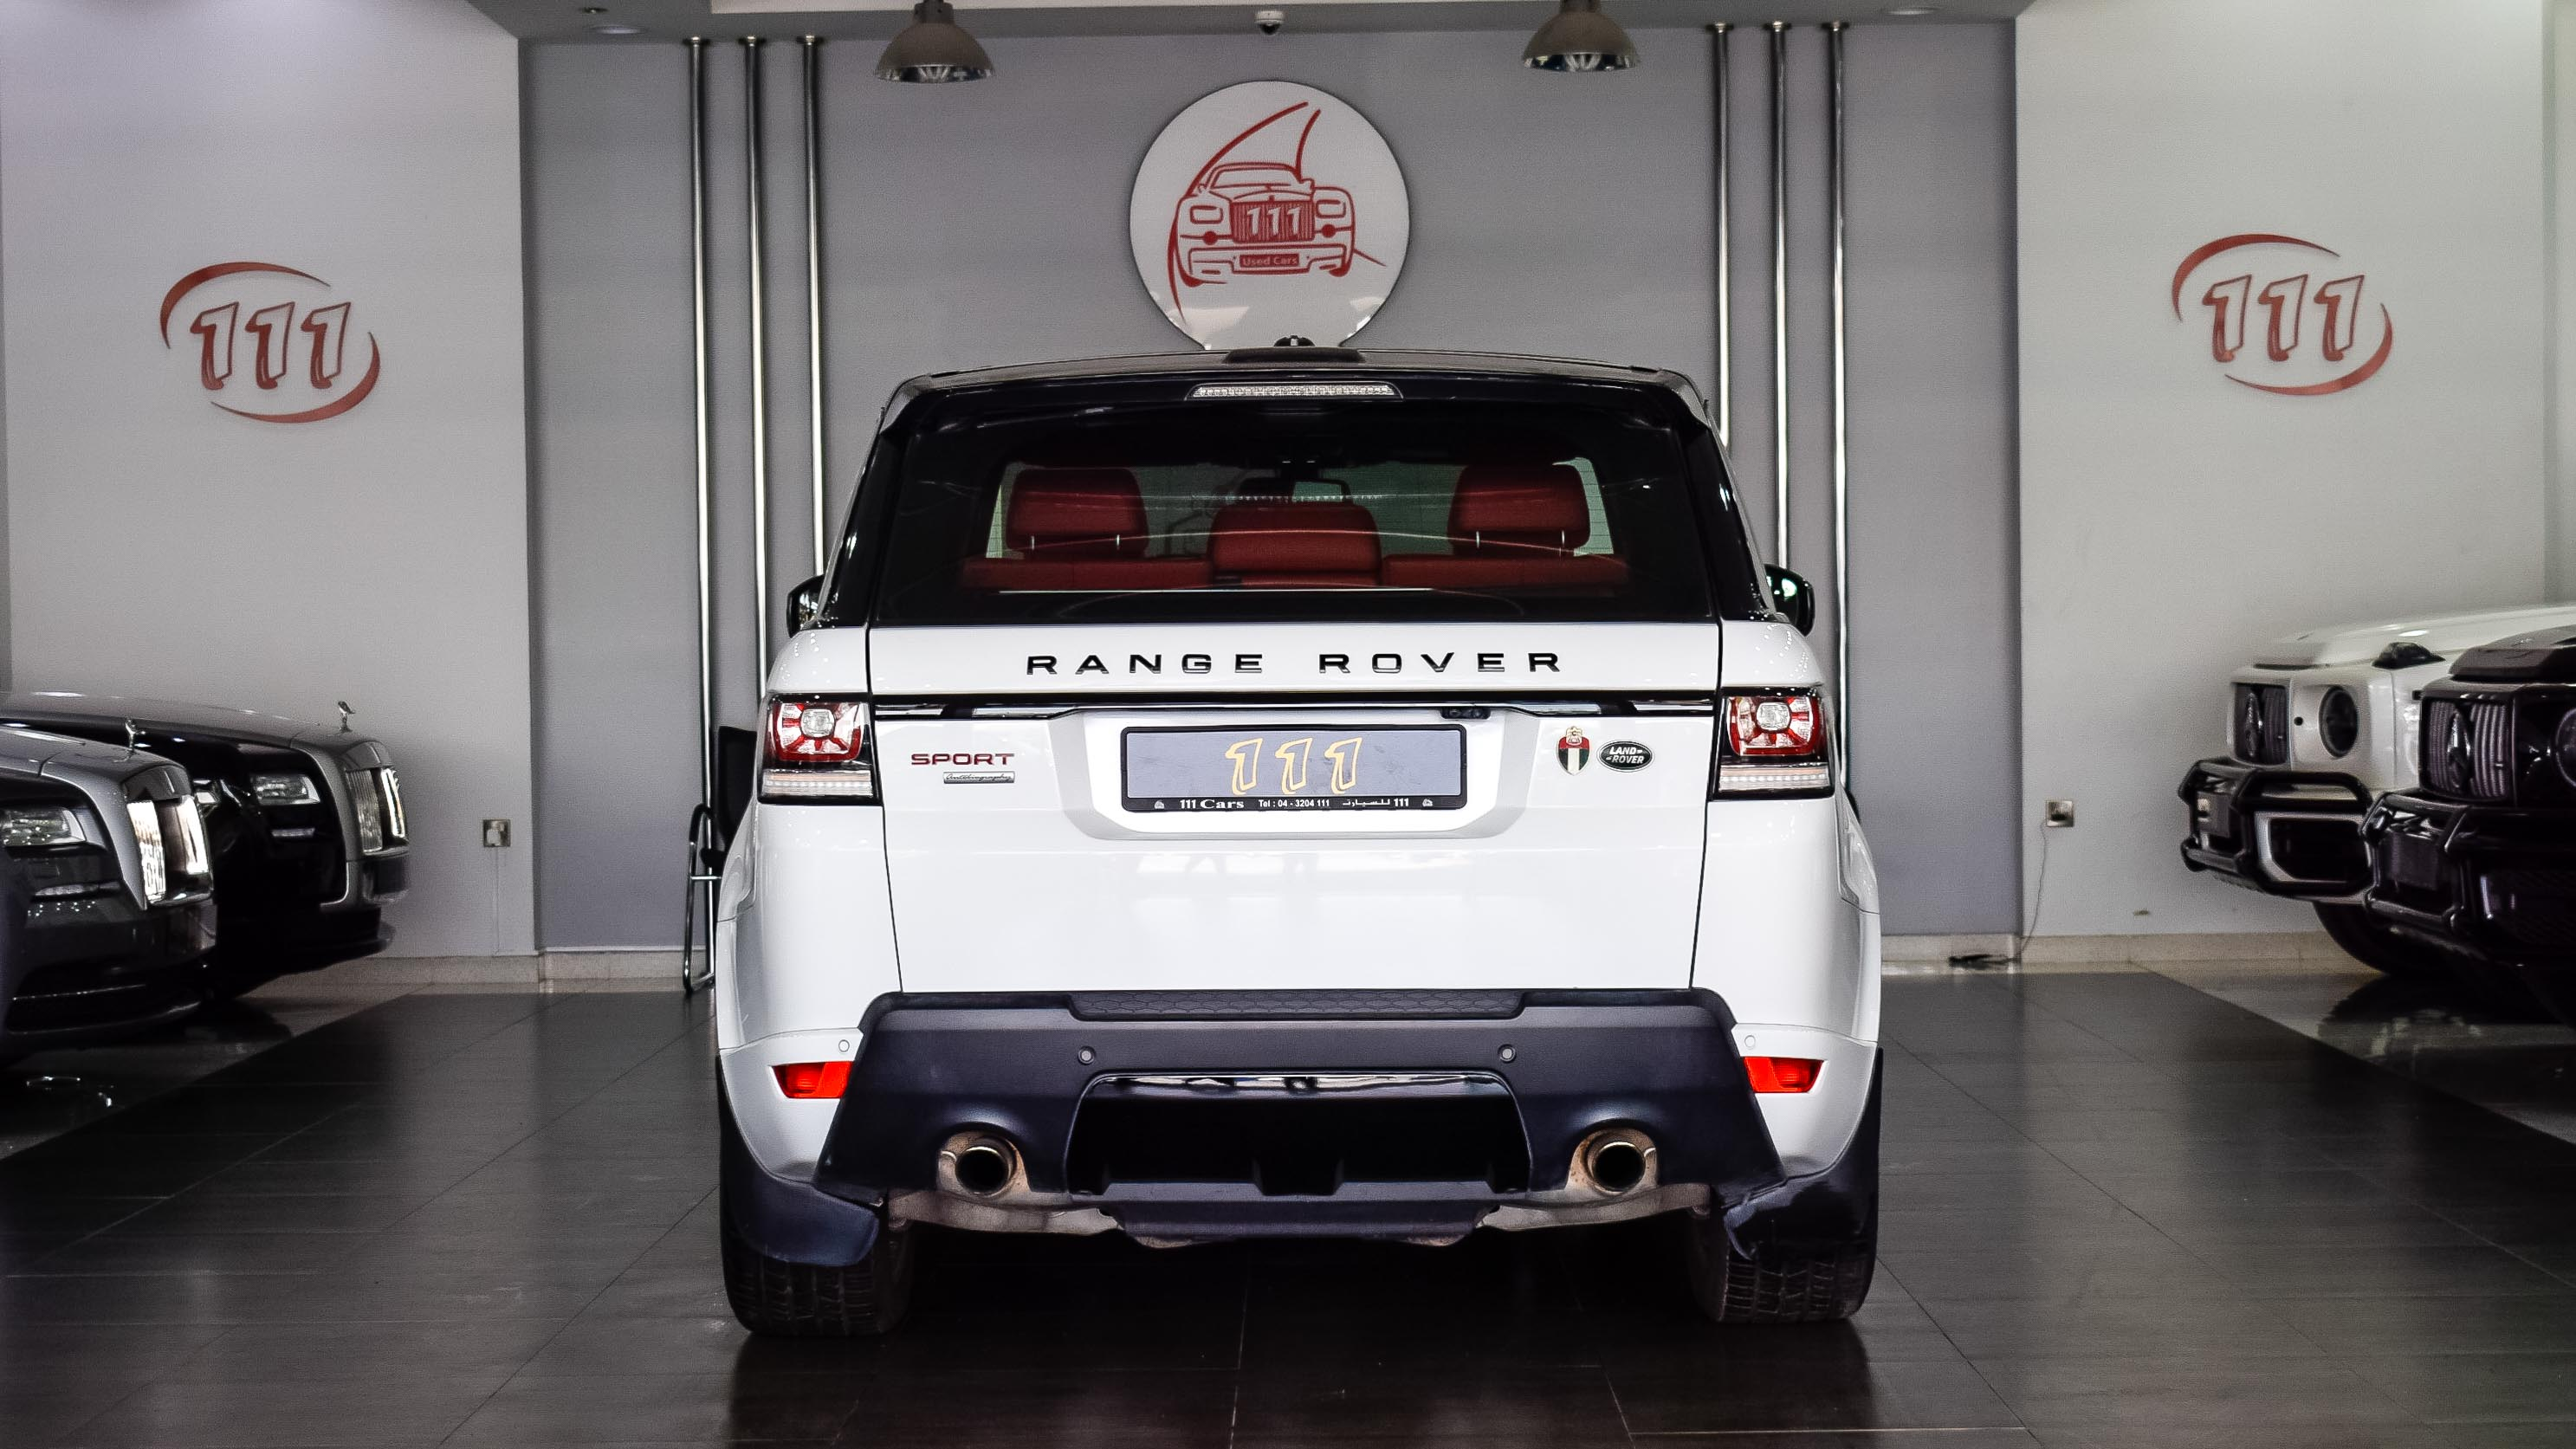 2016-Range-Rover-Sport-Supercharged-With-Sport-Autobiography-Badge-White-Red-09.jpg